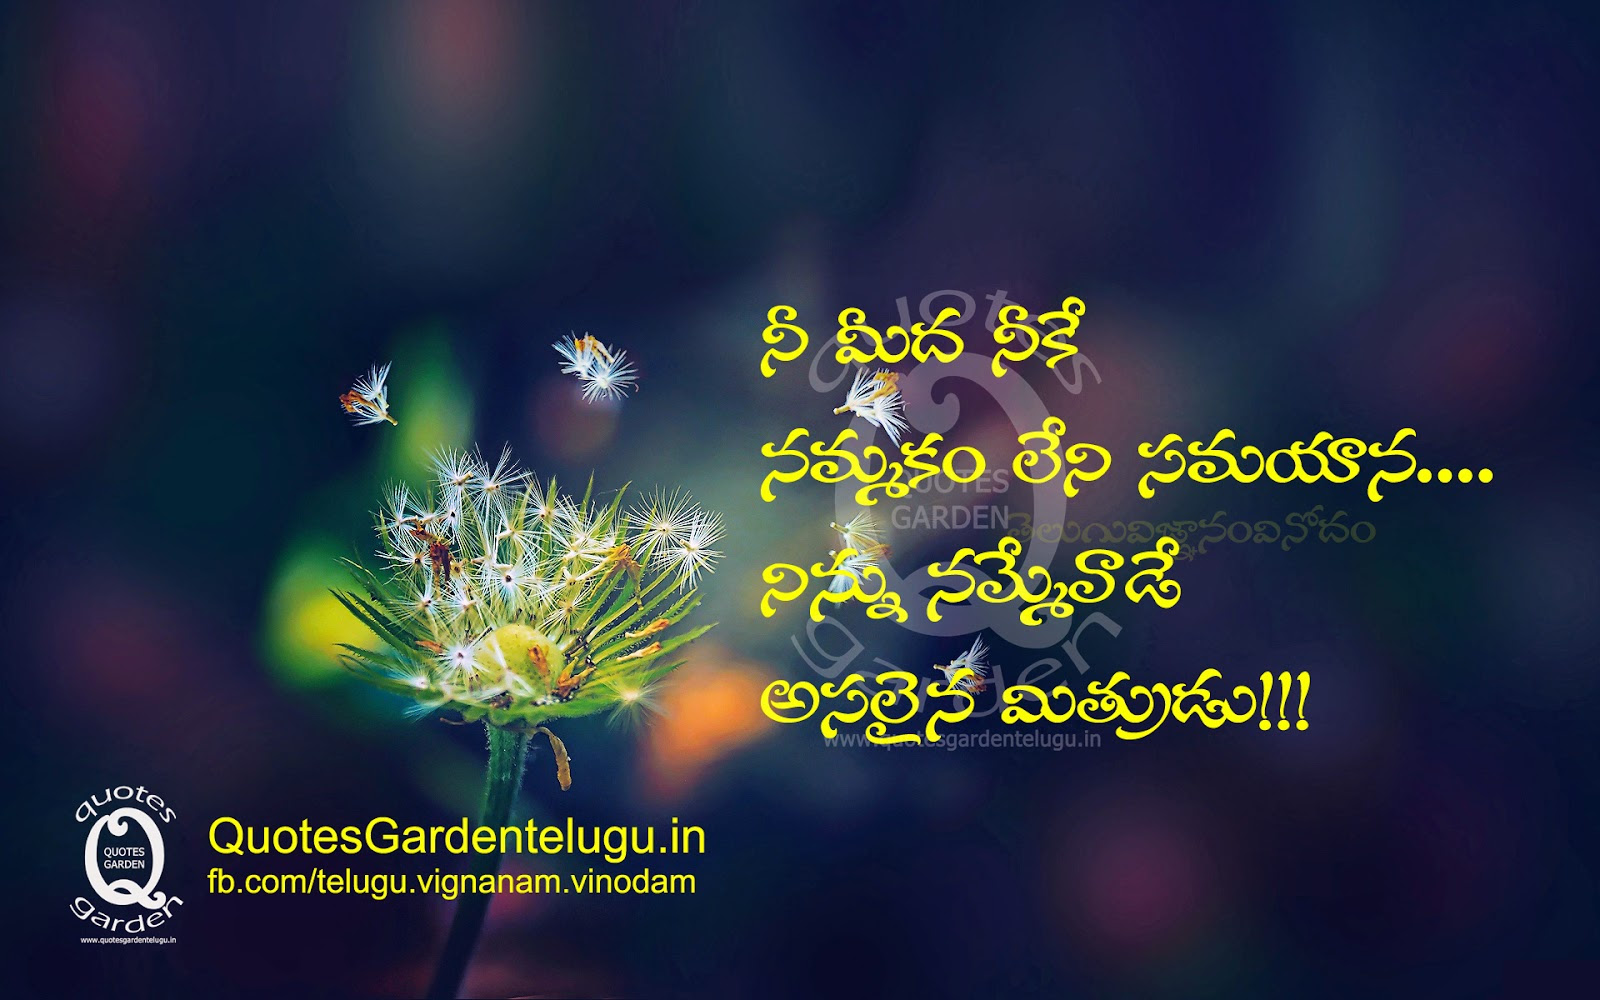 Inspiring Quotes Wallpapers In Hindi Motivational Thoughts And